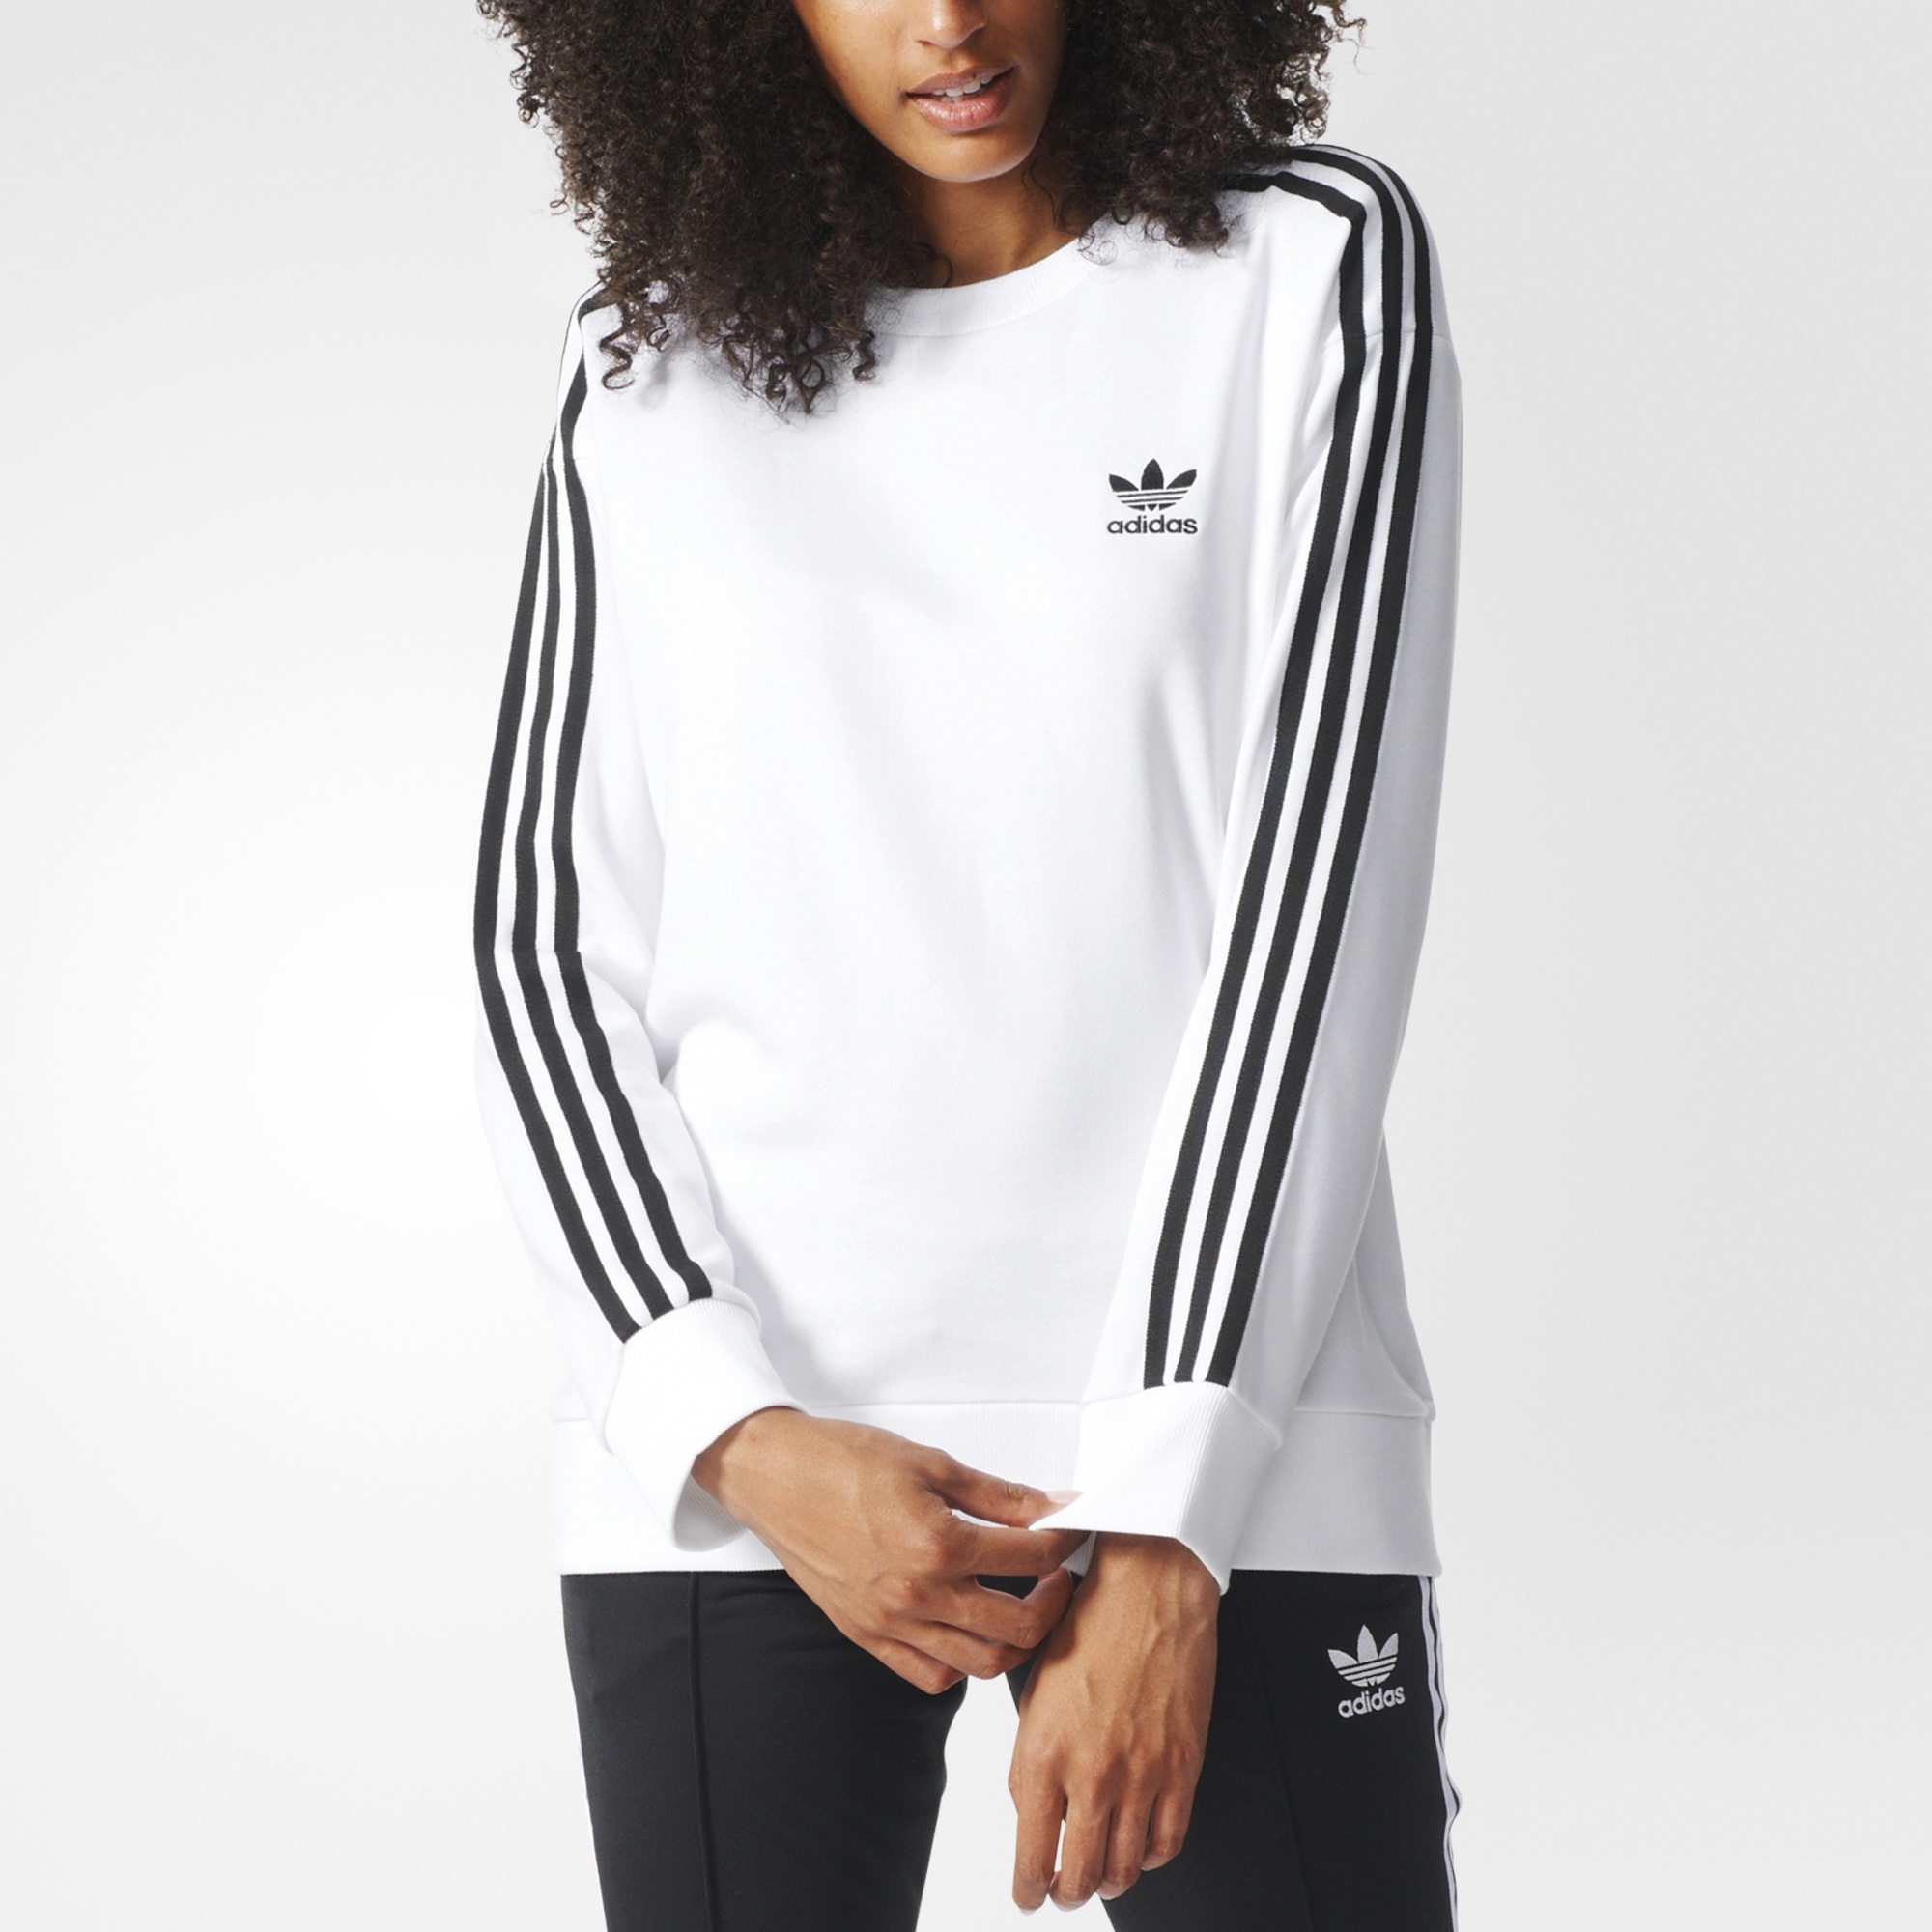 adidas women's white sweatshirt